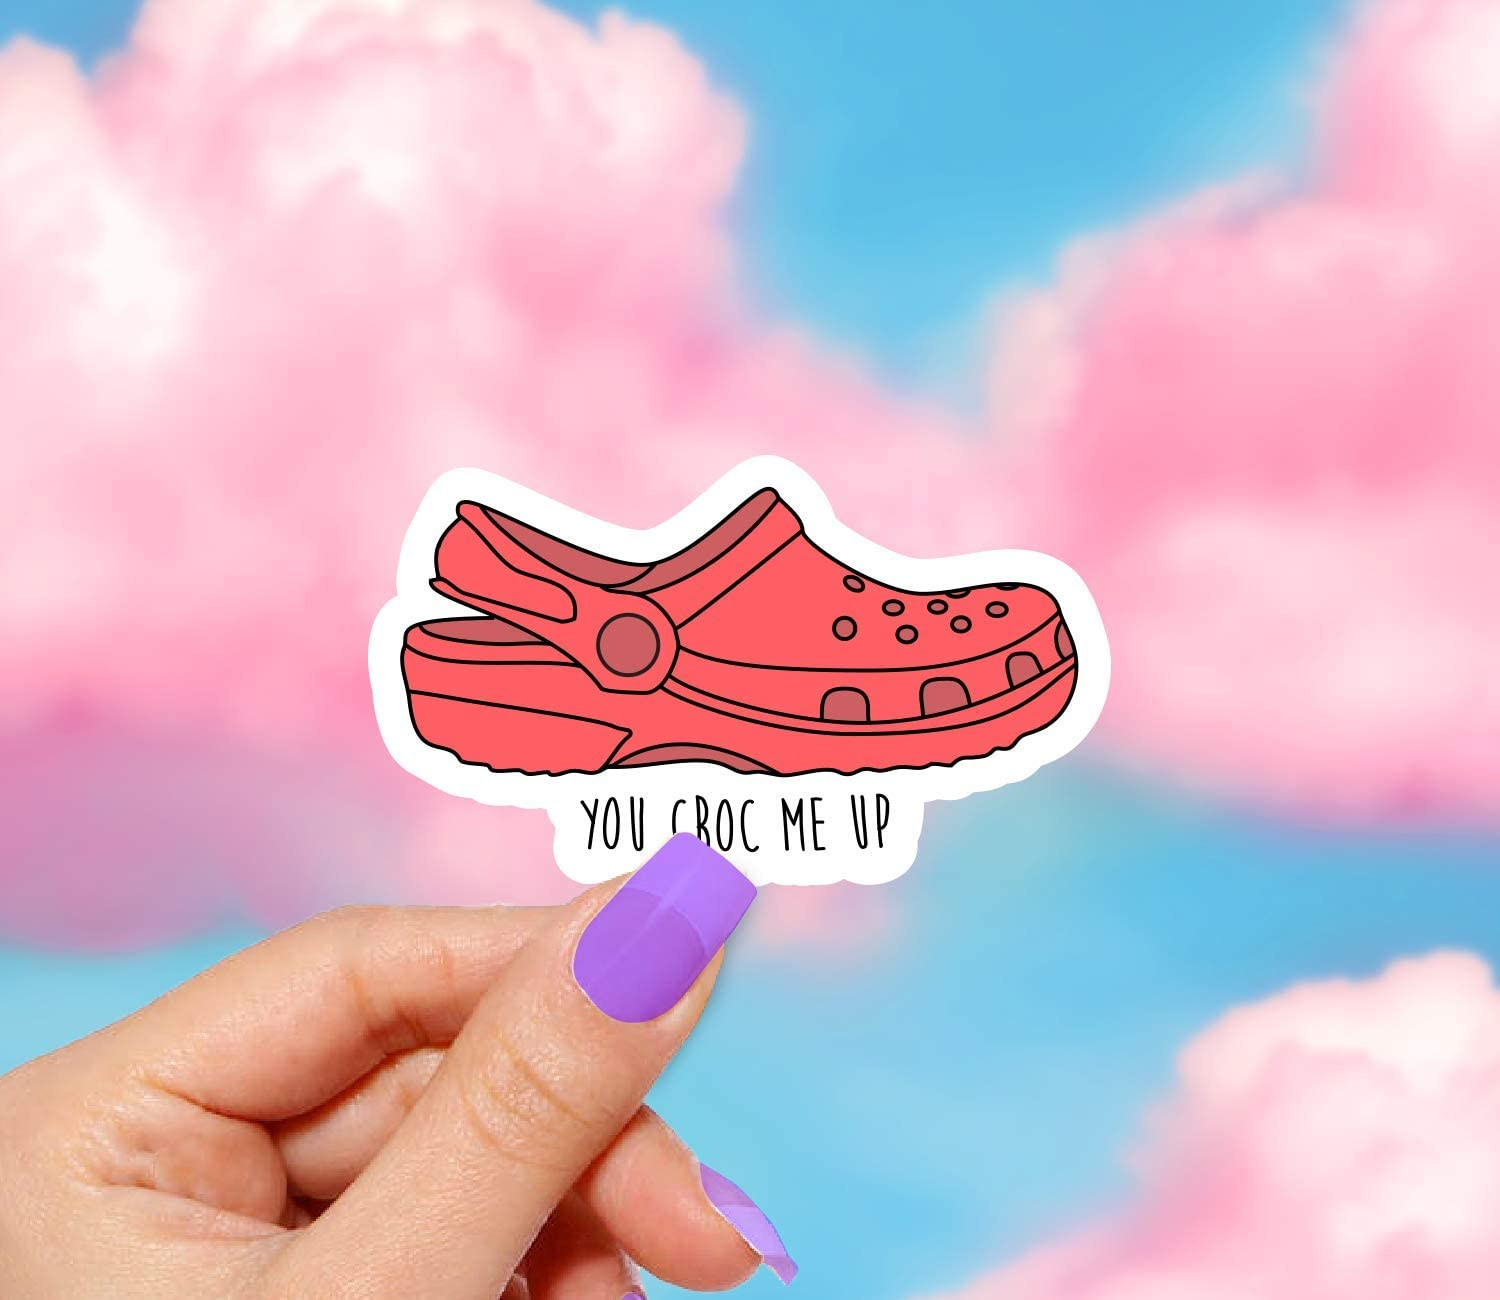 Aesthetic stickers VSCO Stickers Water bottle Croc Stickers Red Croc Sticker Laptop Stickers Crocs decal Red You Croc Me Up Sticker